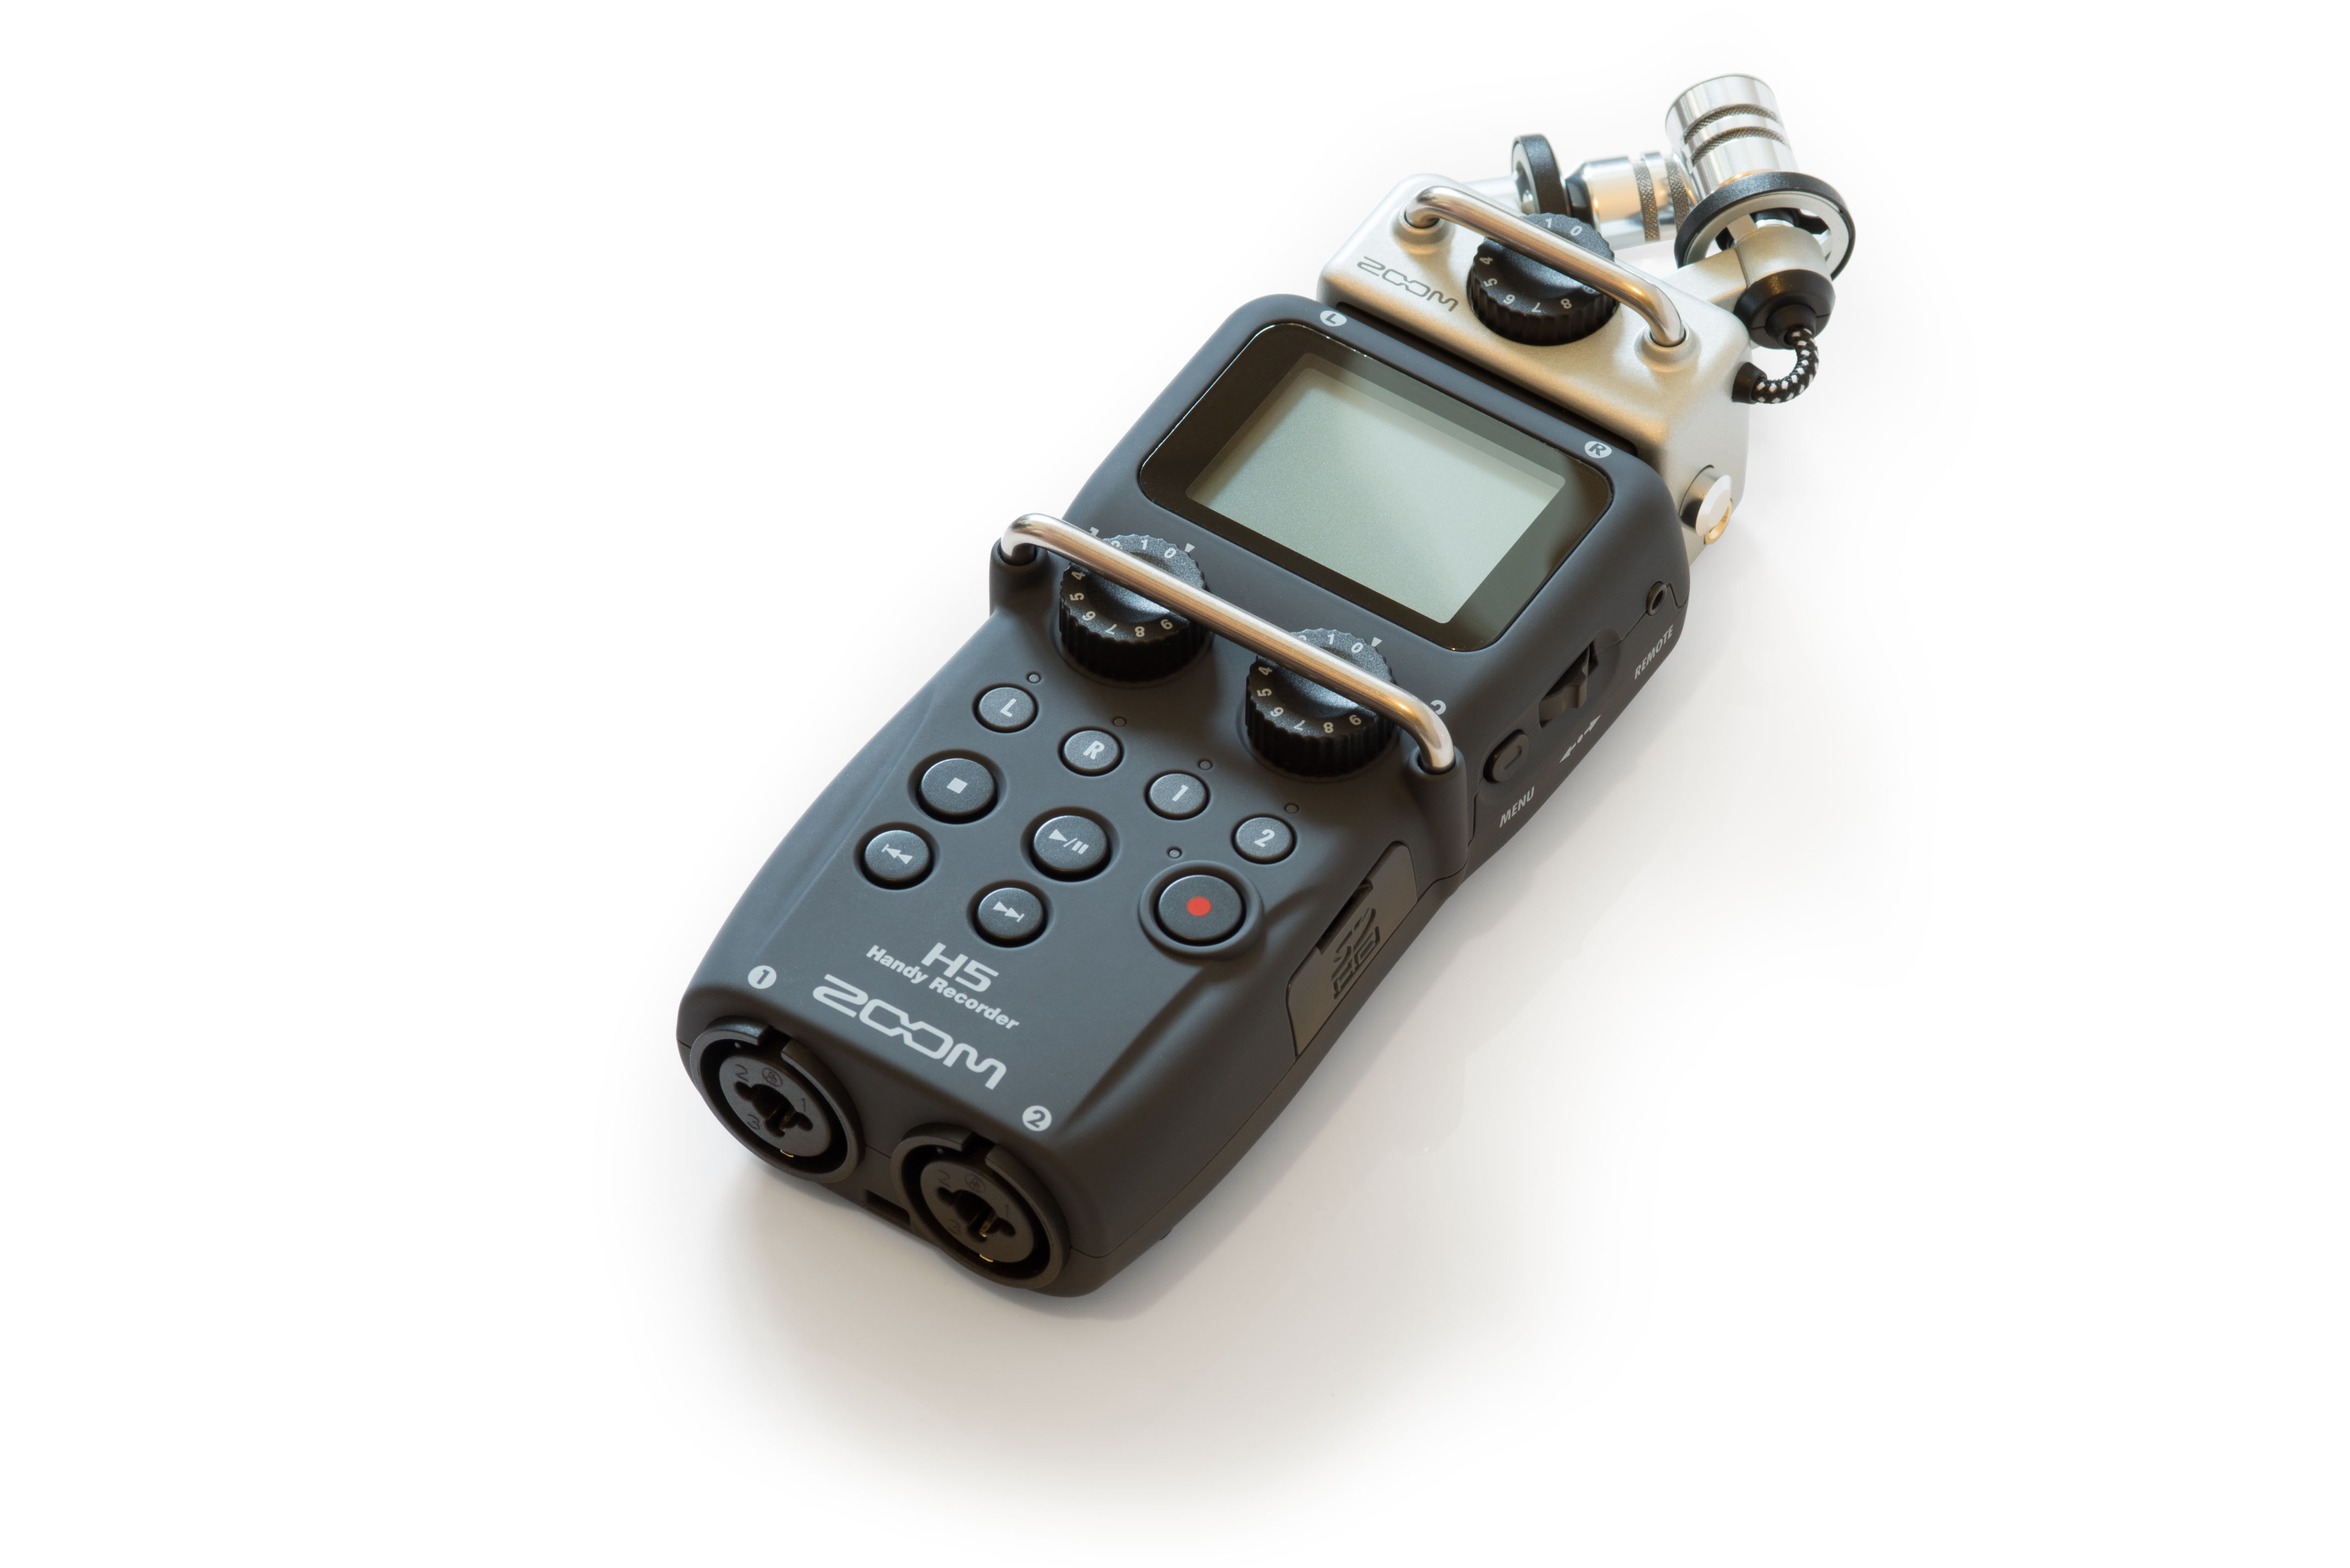 Zoom H5 Handy Recorder - Wikipedia